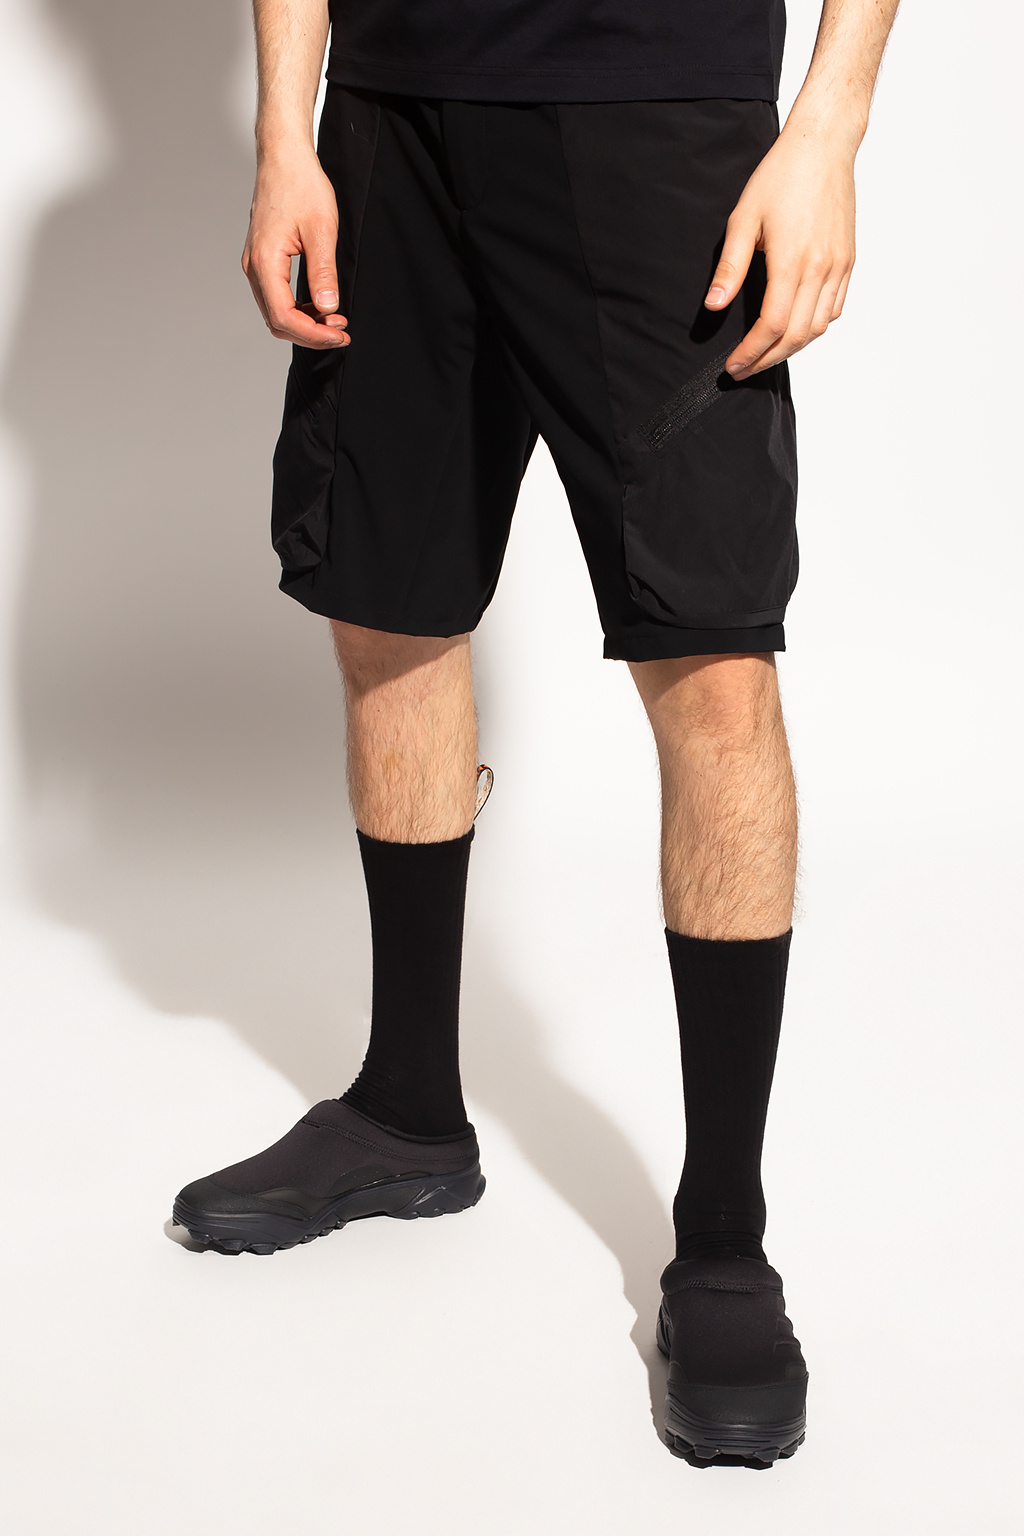 White Mountaineering Shorts with pockets